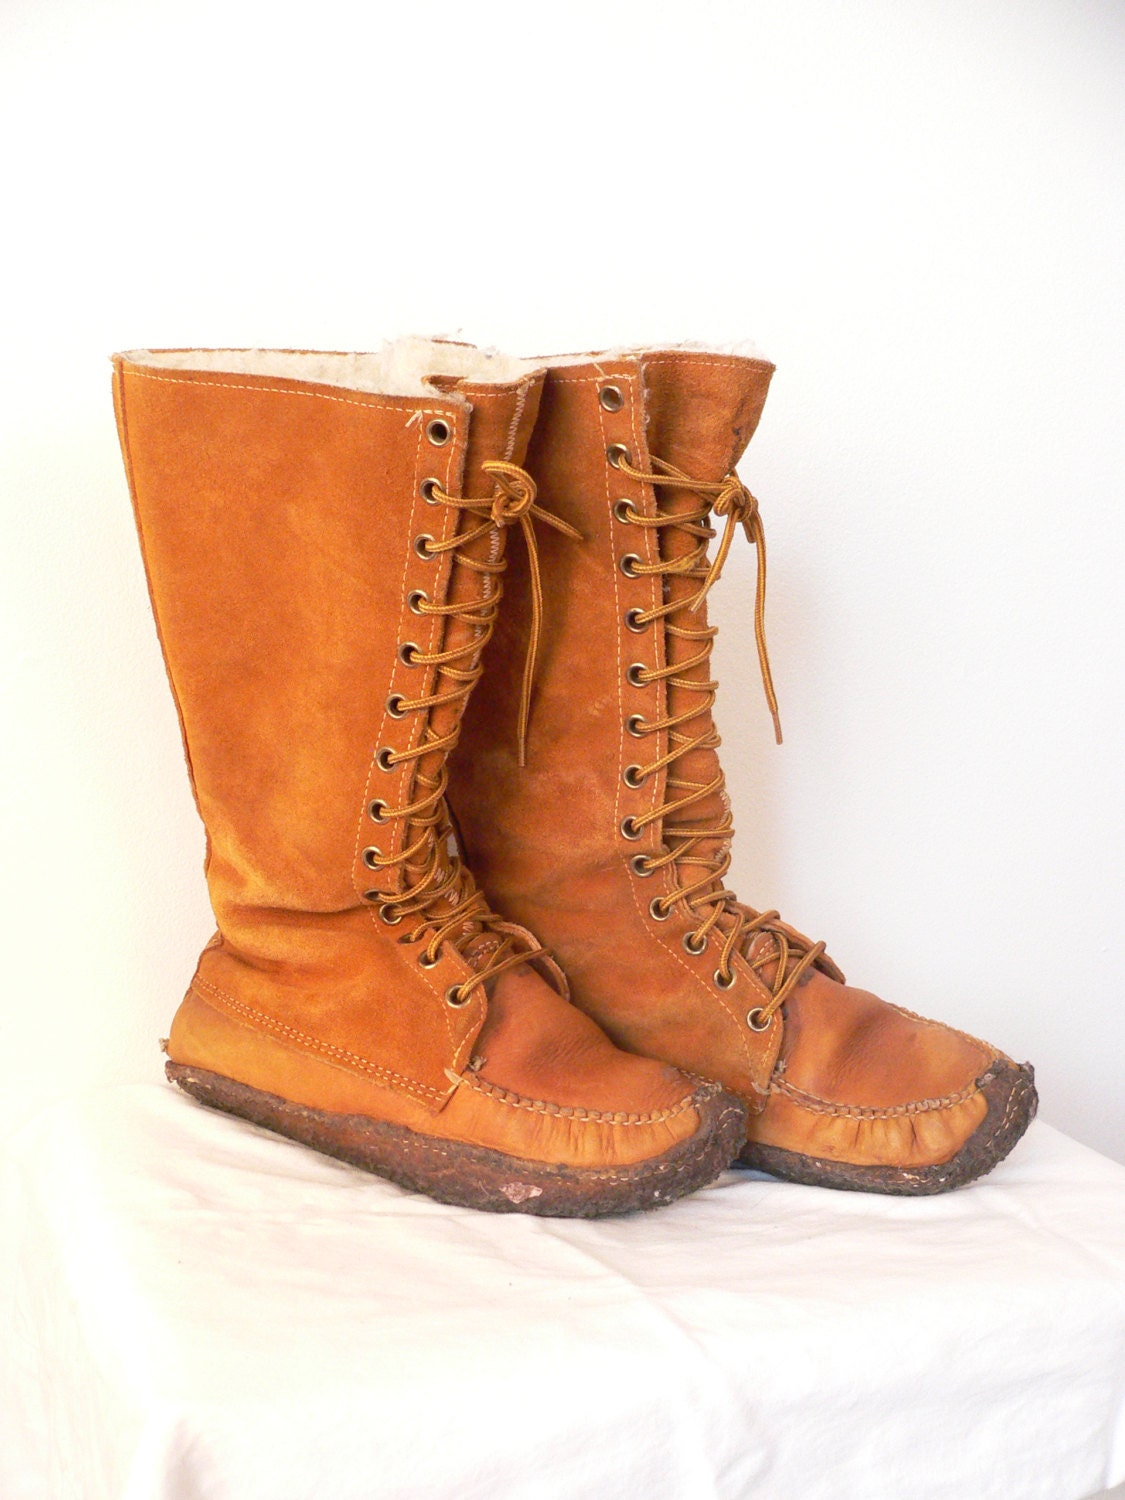 1970s rust suede mukluk moccasin boots by